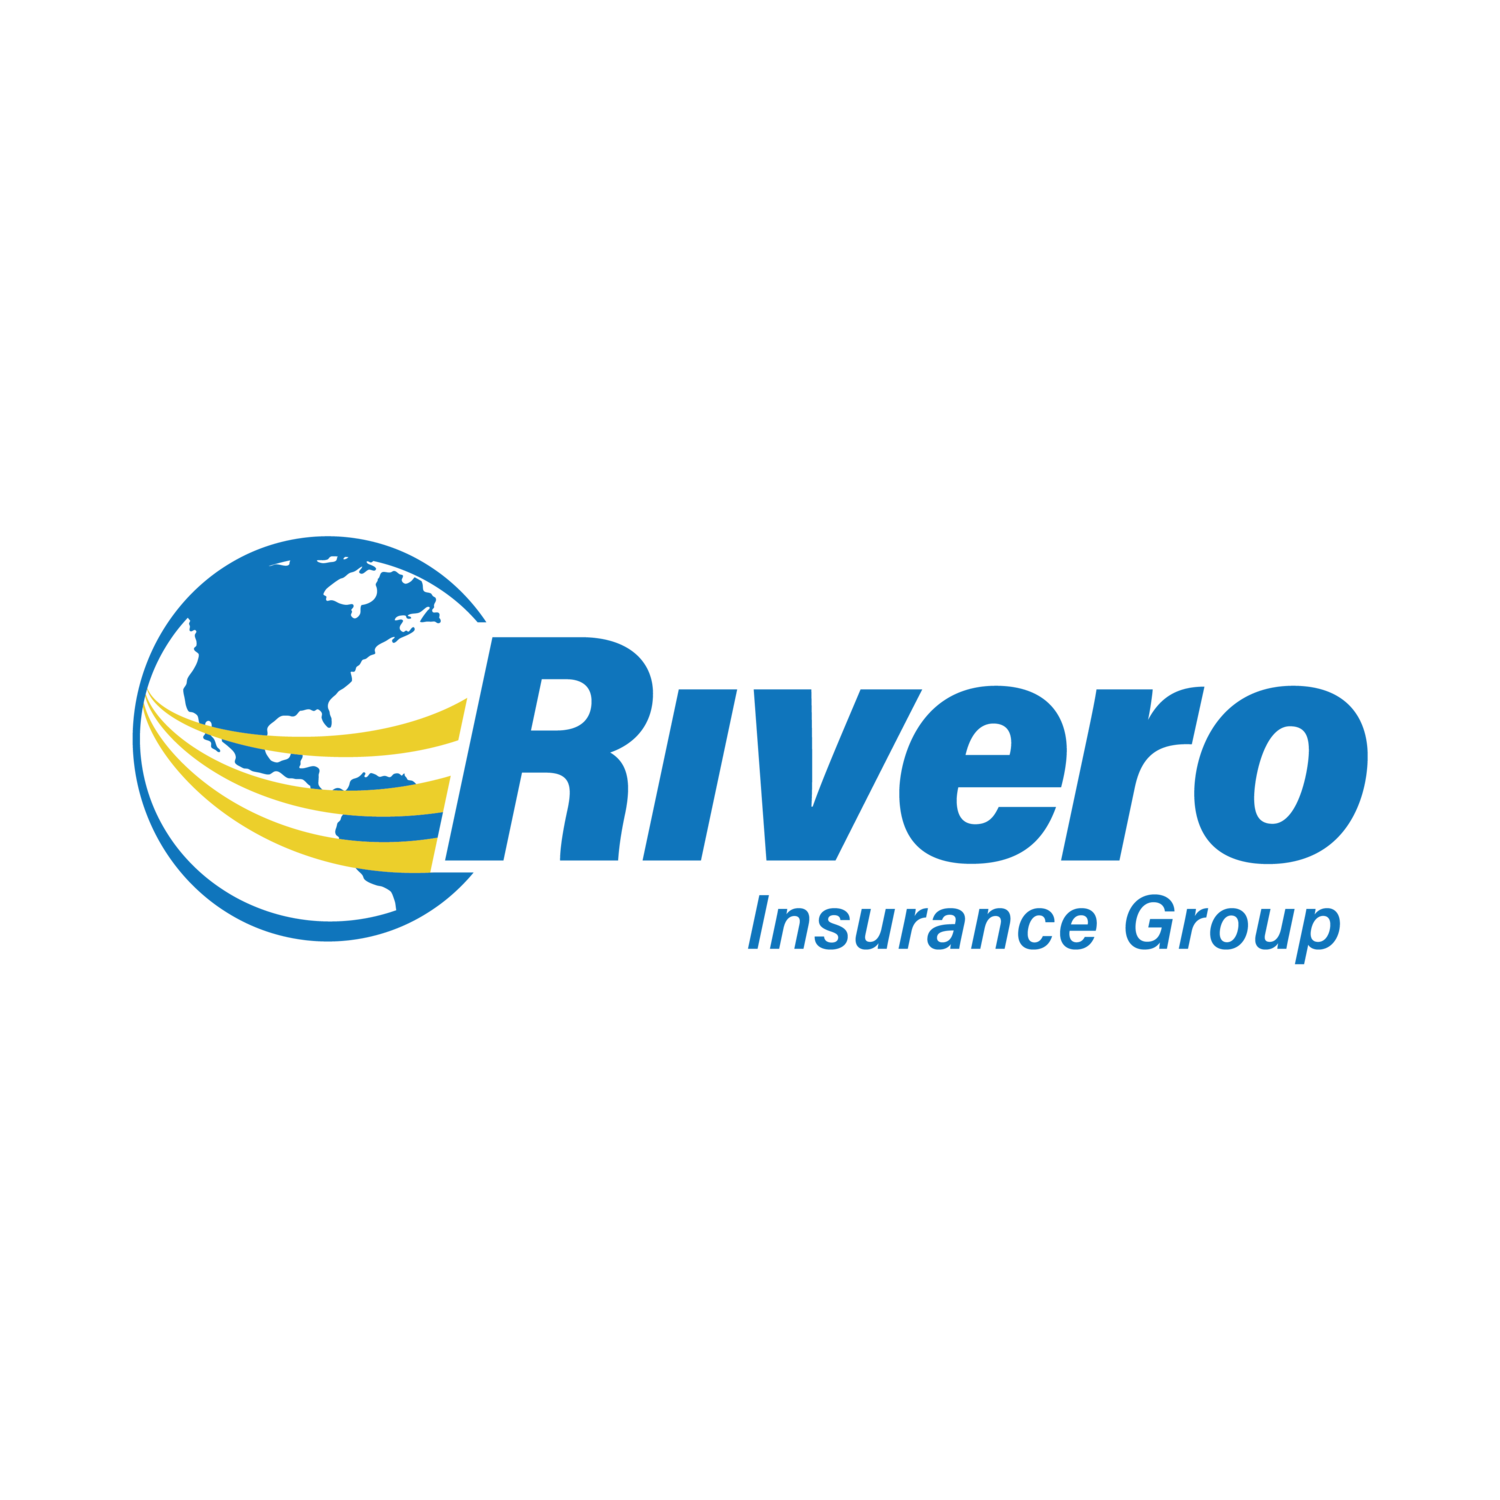 Rivero Insurance Group